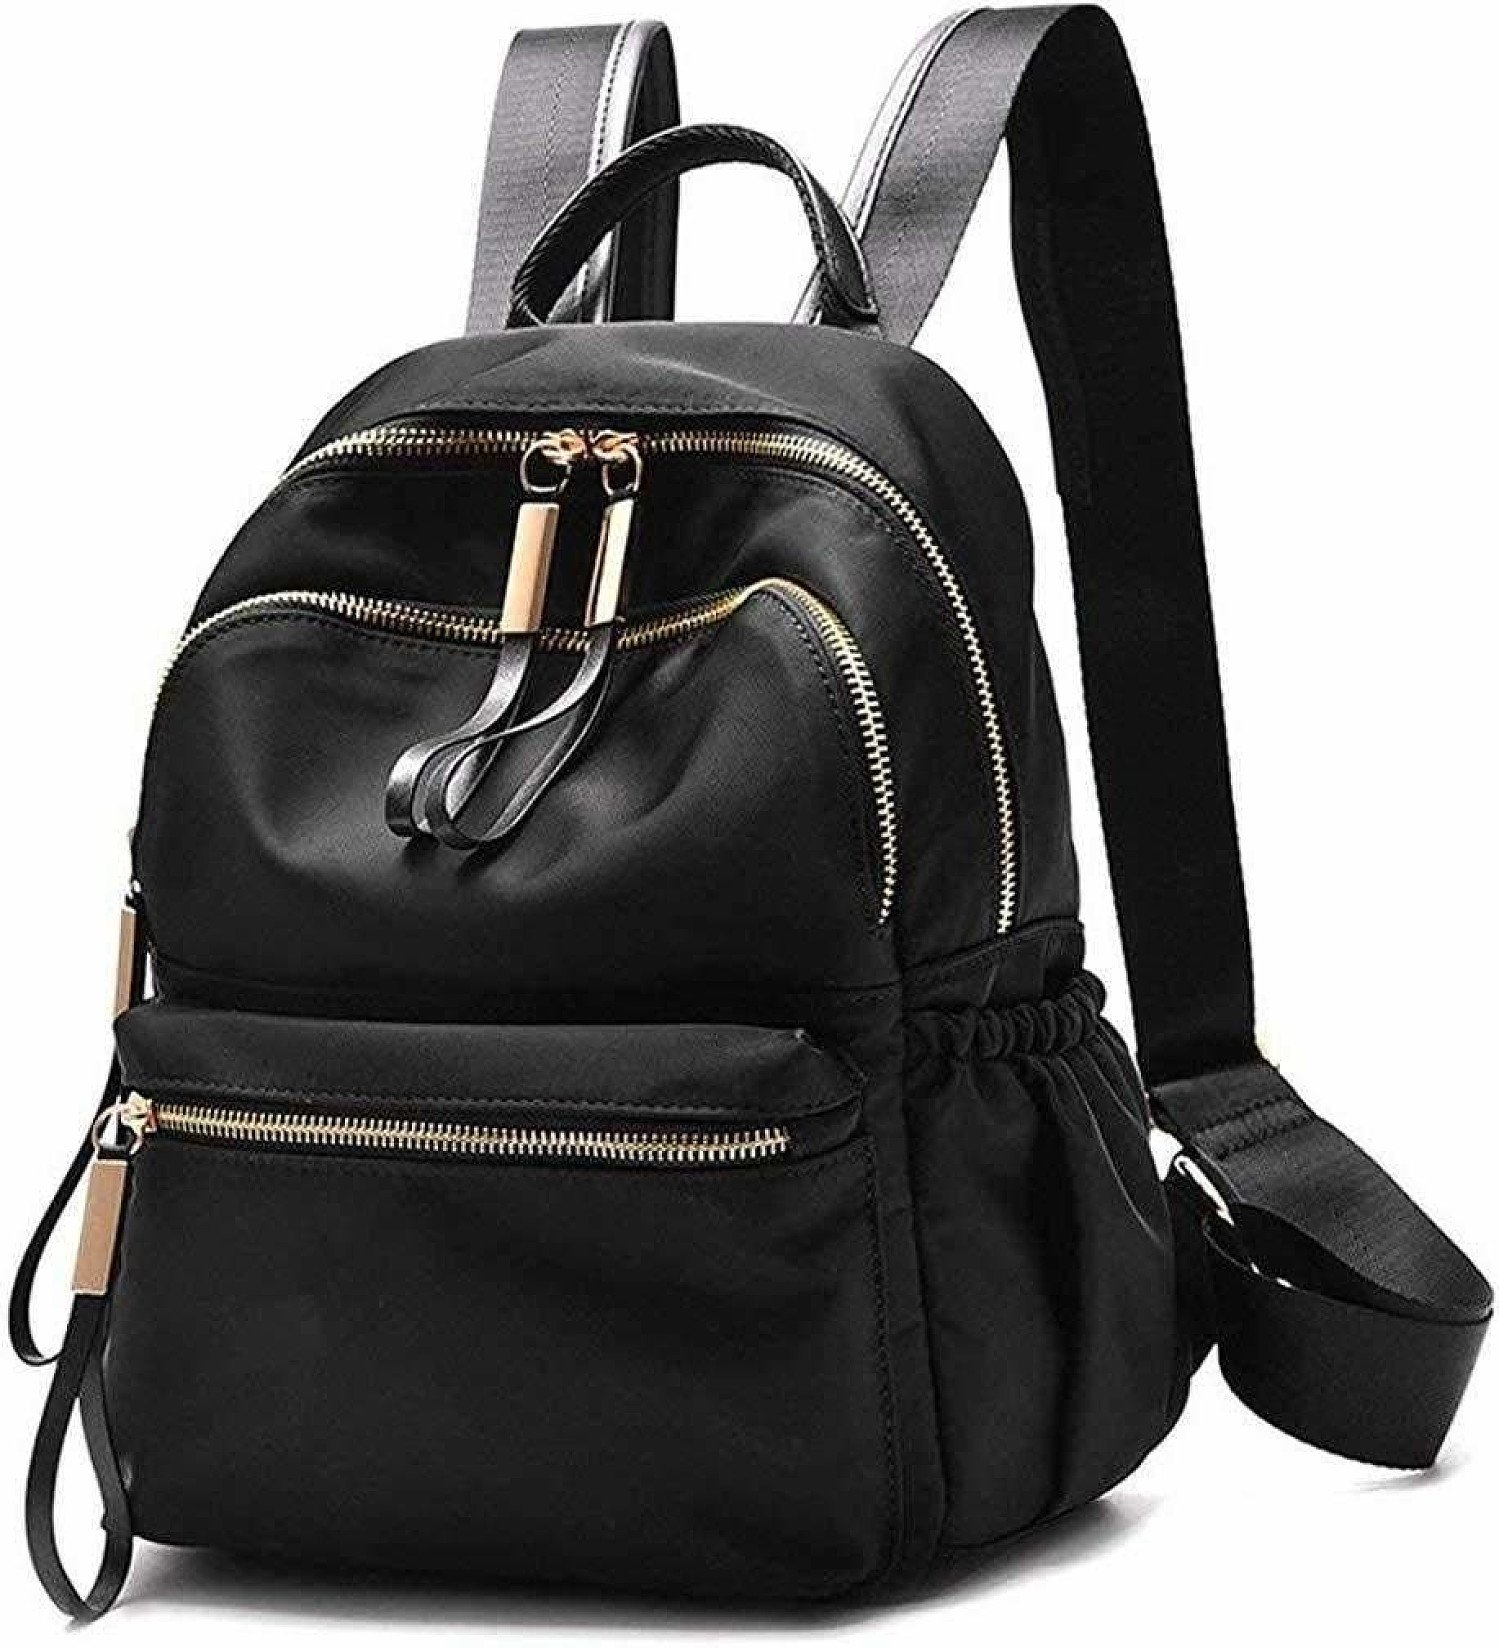 Waterproof Oxford/PU Leather Small Backpack Purse for Women School Bag for Girls